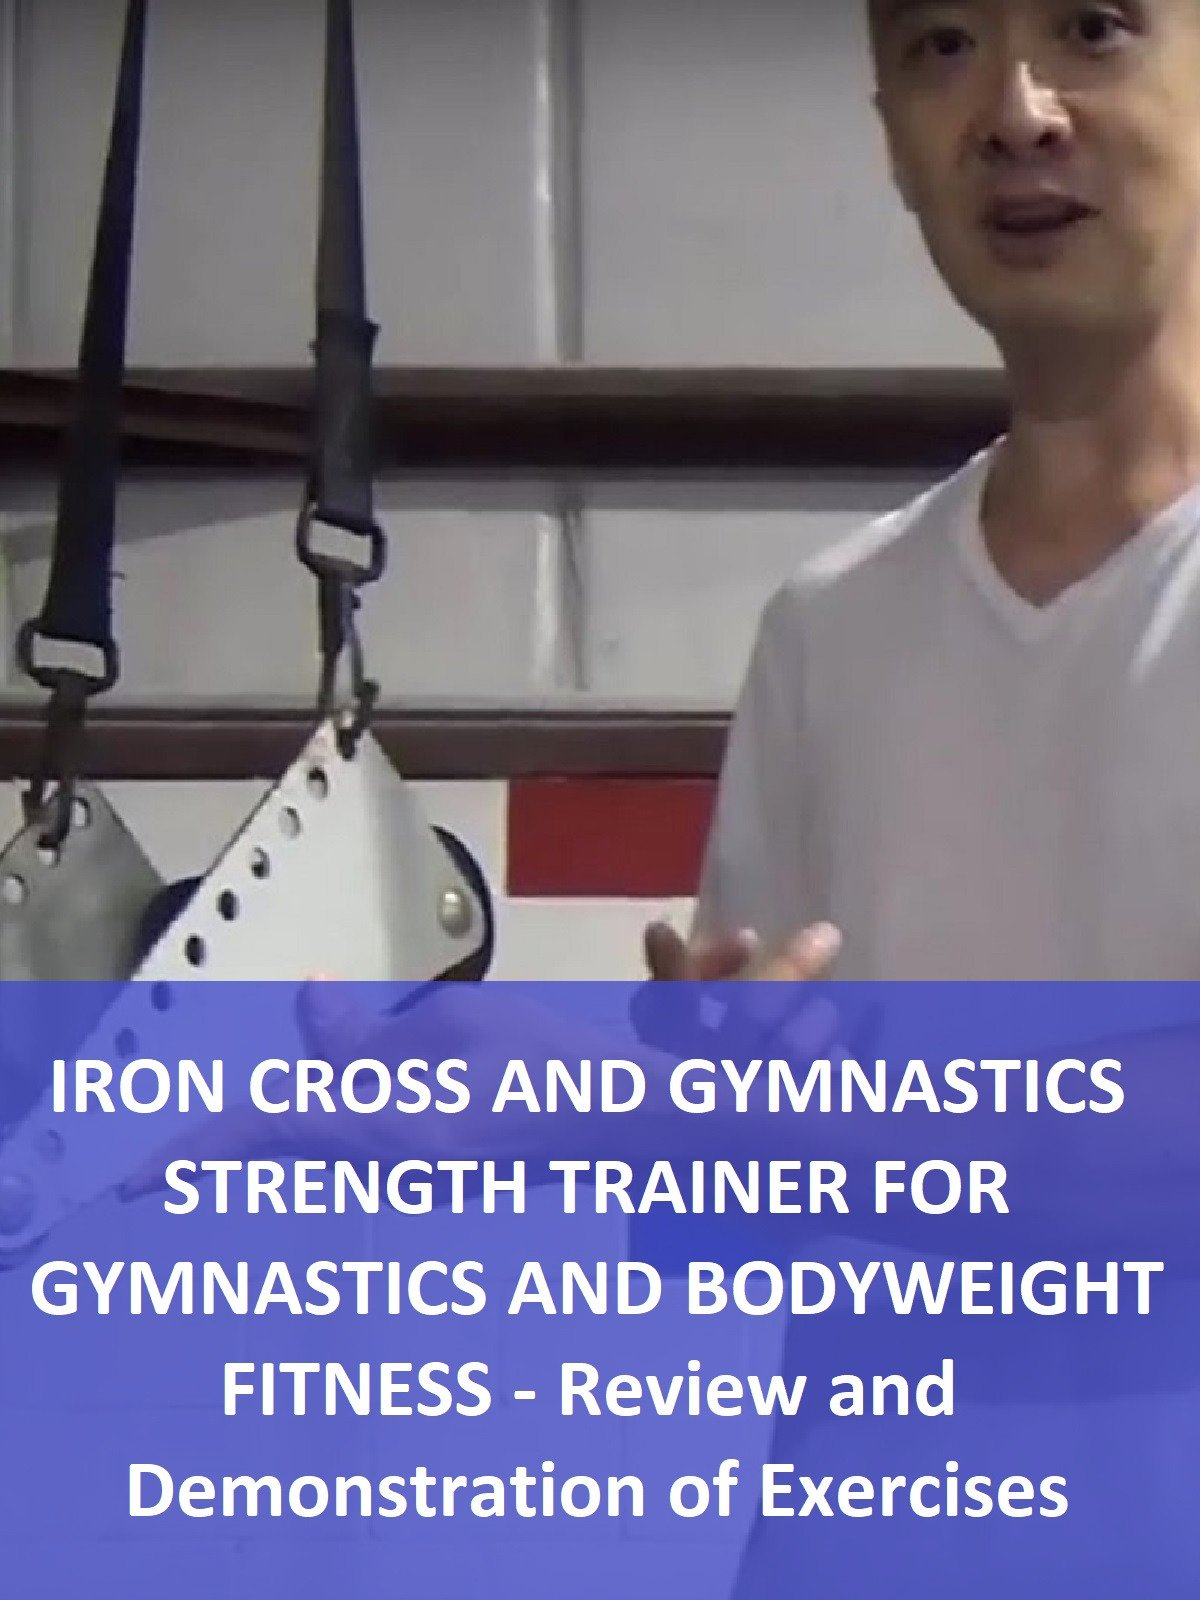 Iron Cross and Gymnastics Strength Trainer for Gymnastics and Bodyweight Fitness